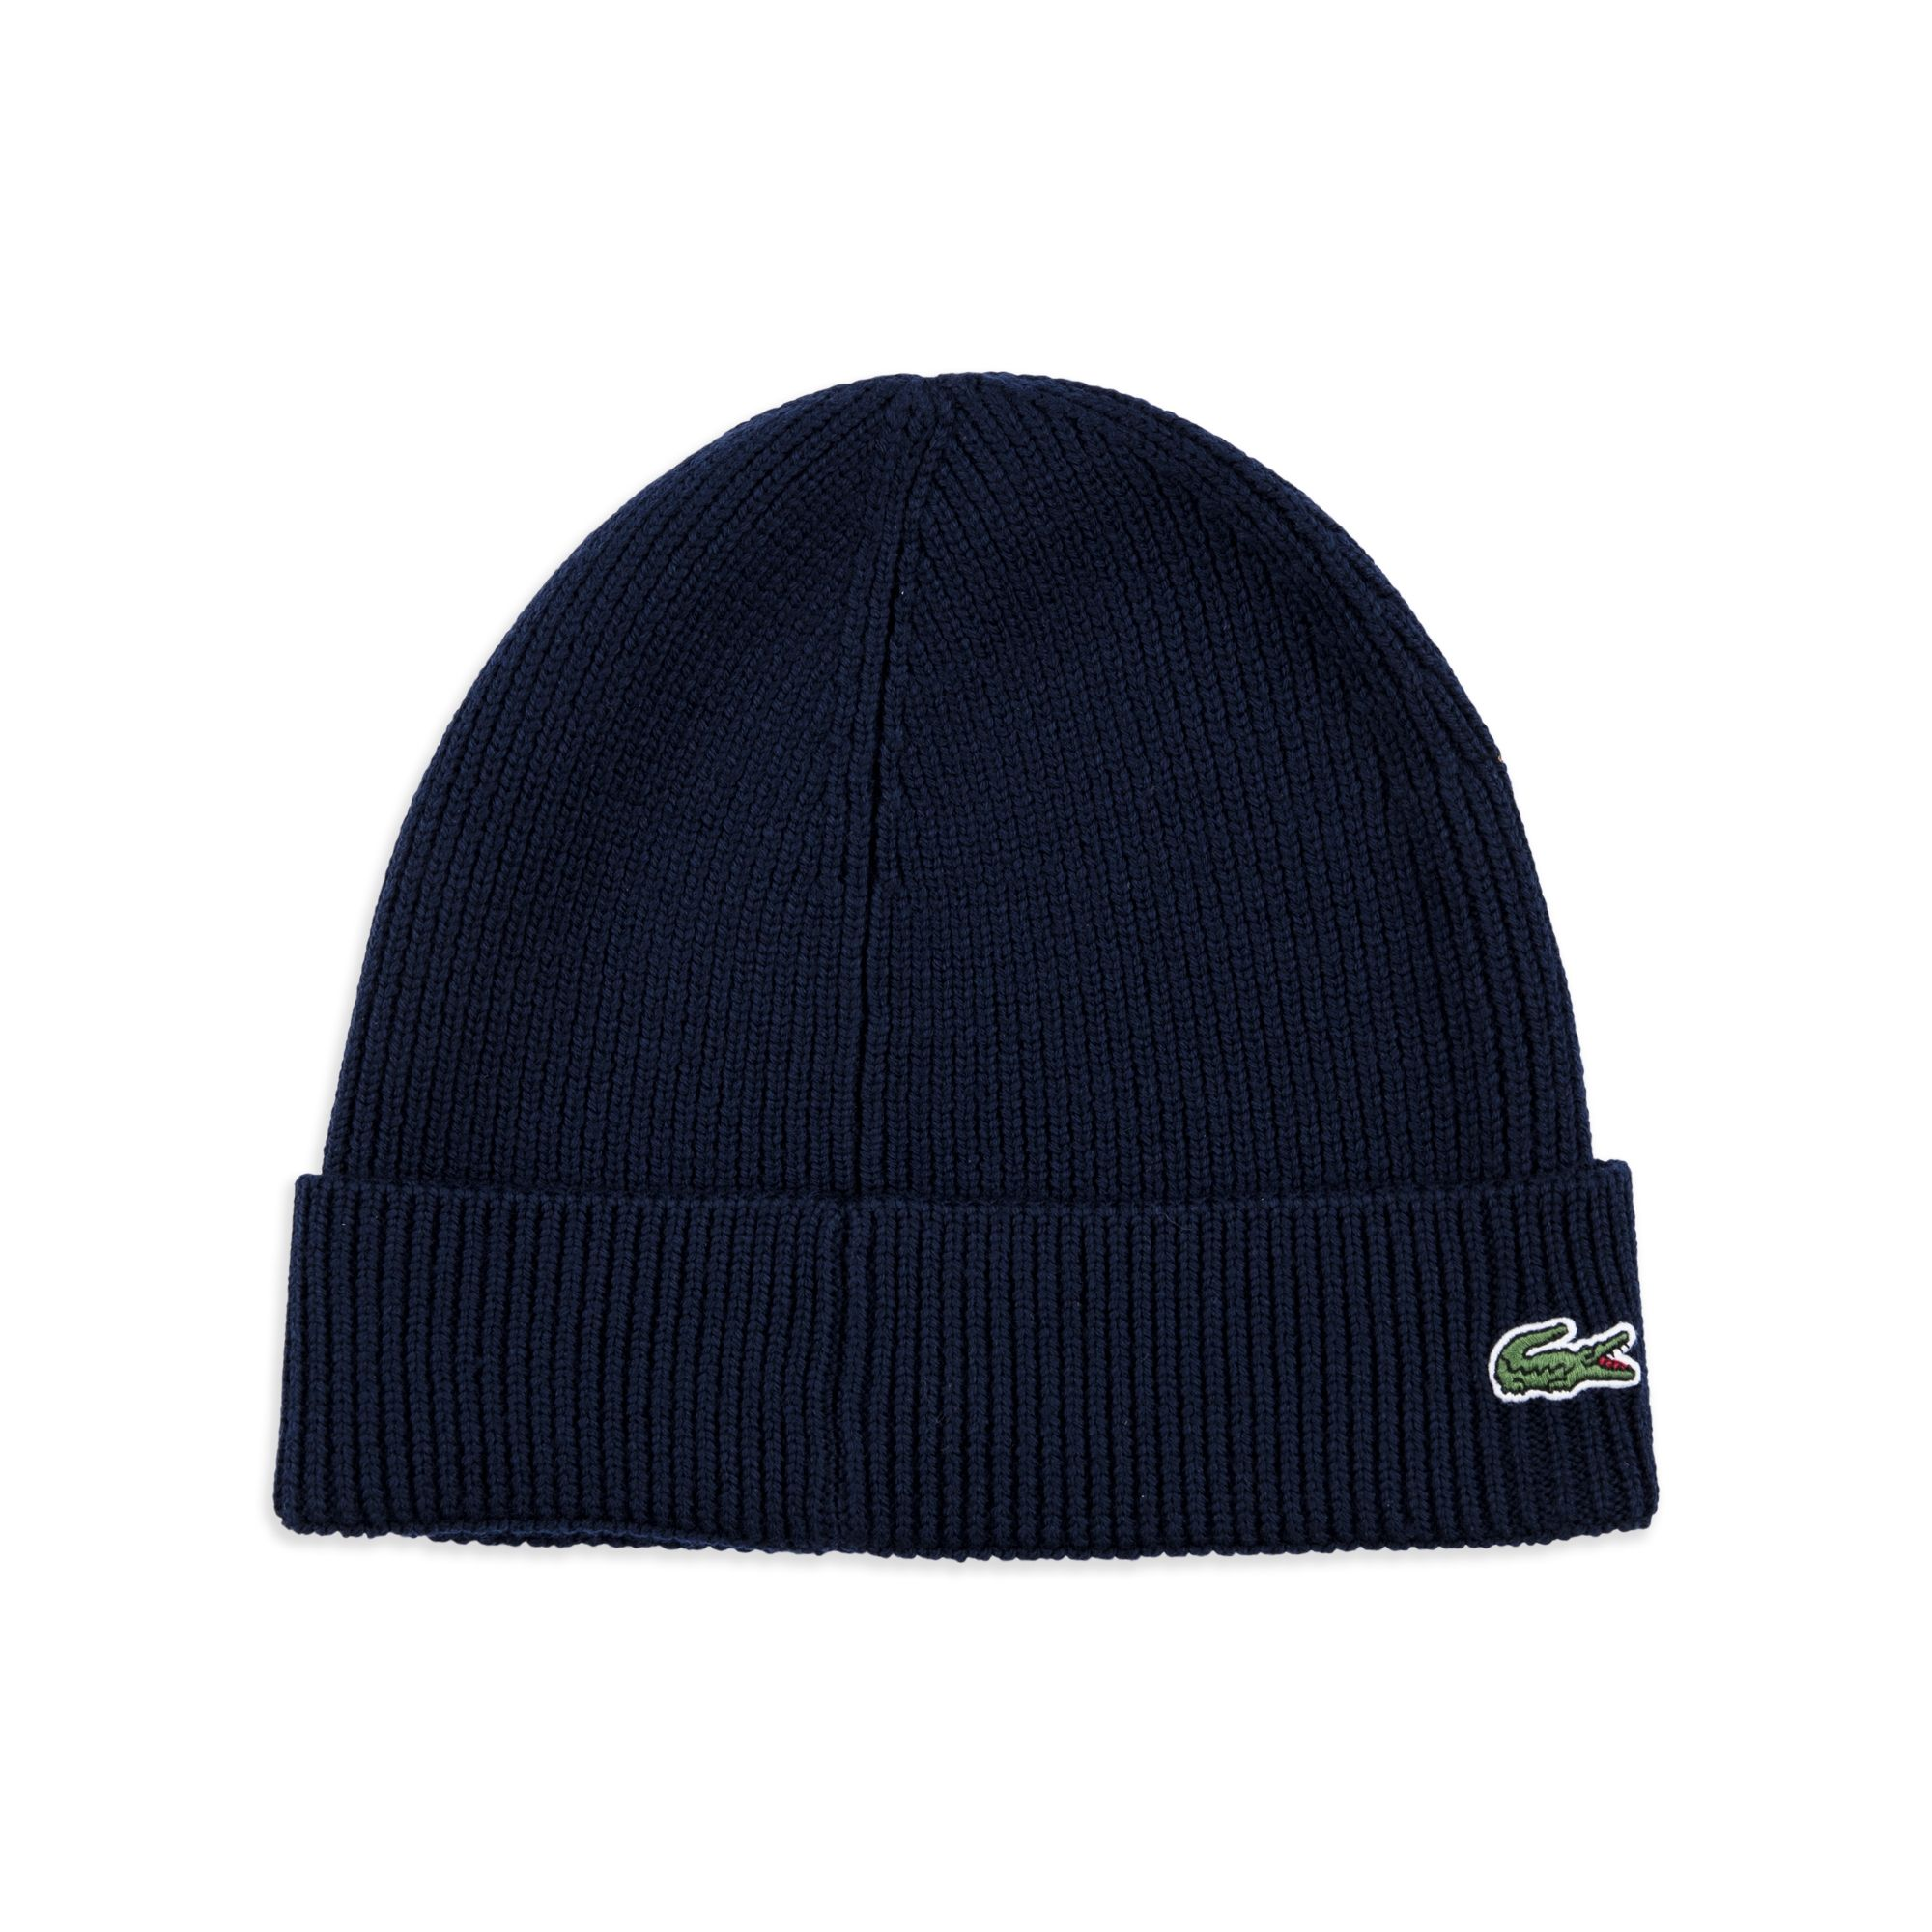 174e5088c Boys Croc Logo Beanie - Navy | base Your Essential Winter ...